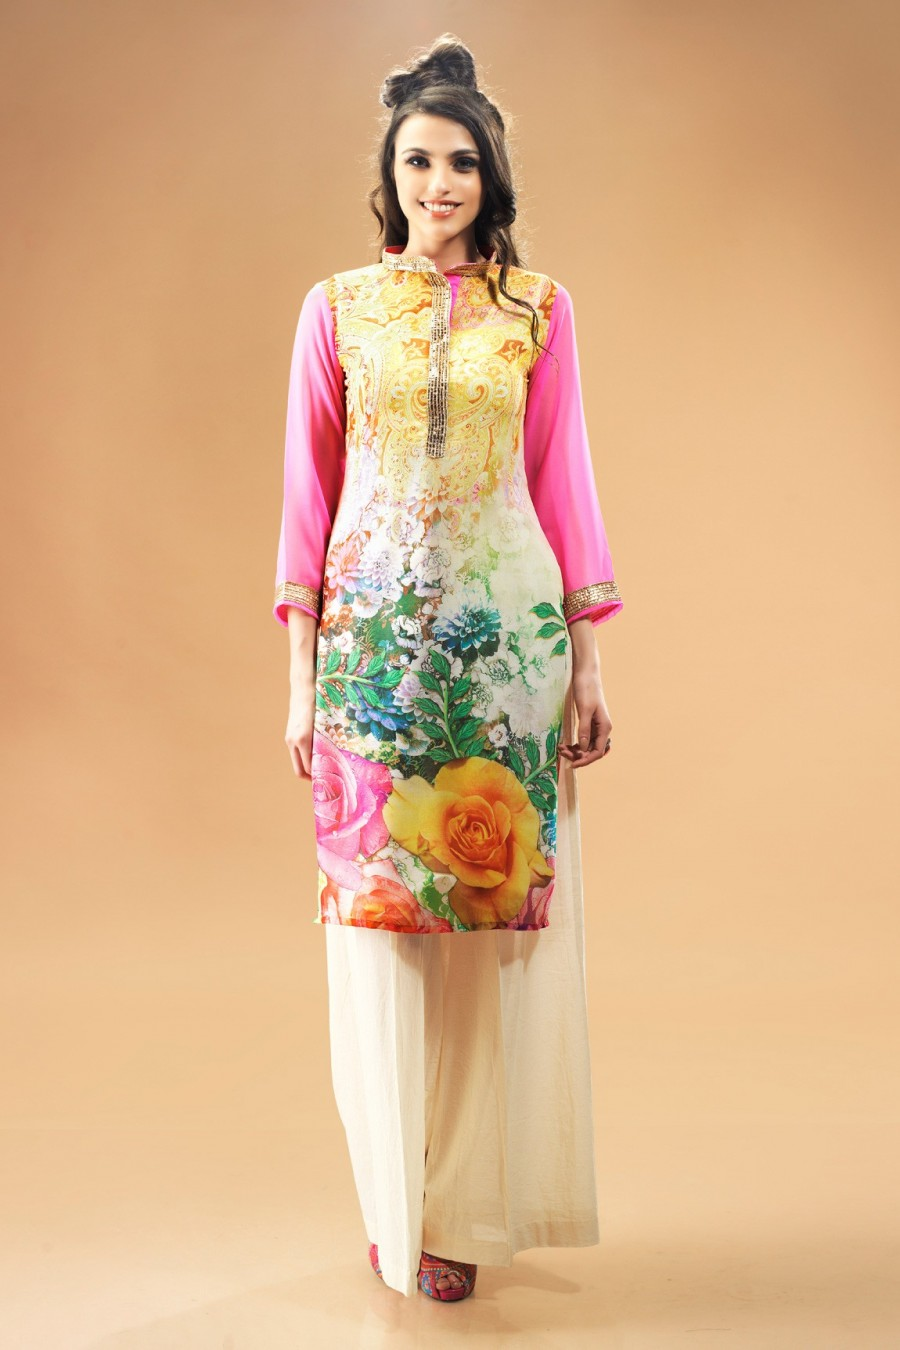 Buy Multi-color Georgette Kurti Comprising All-over Floral Prints Online